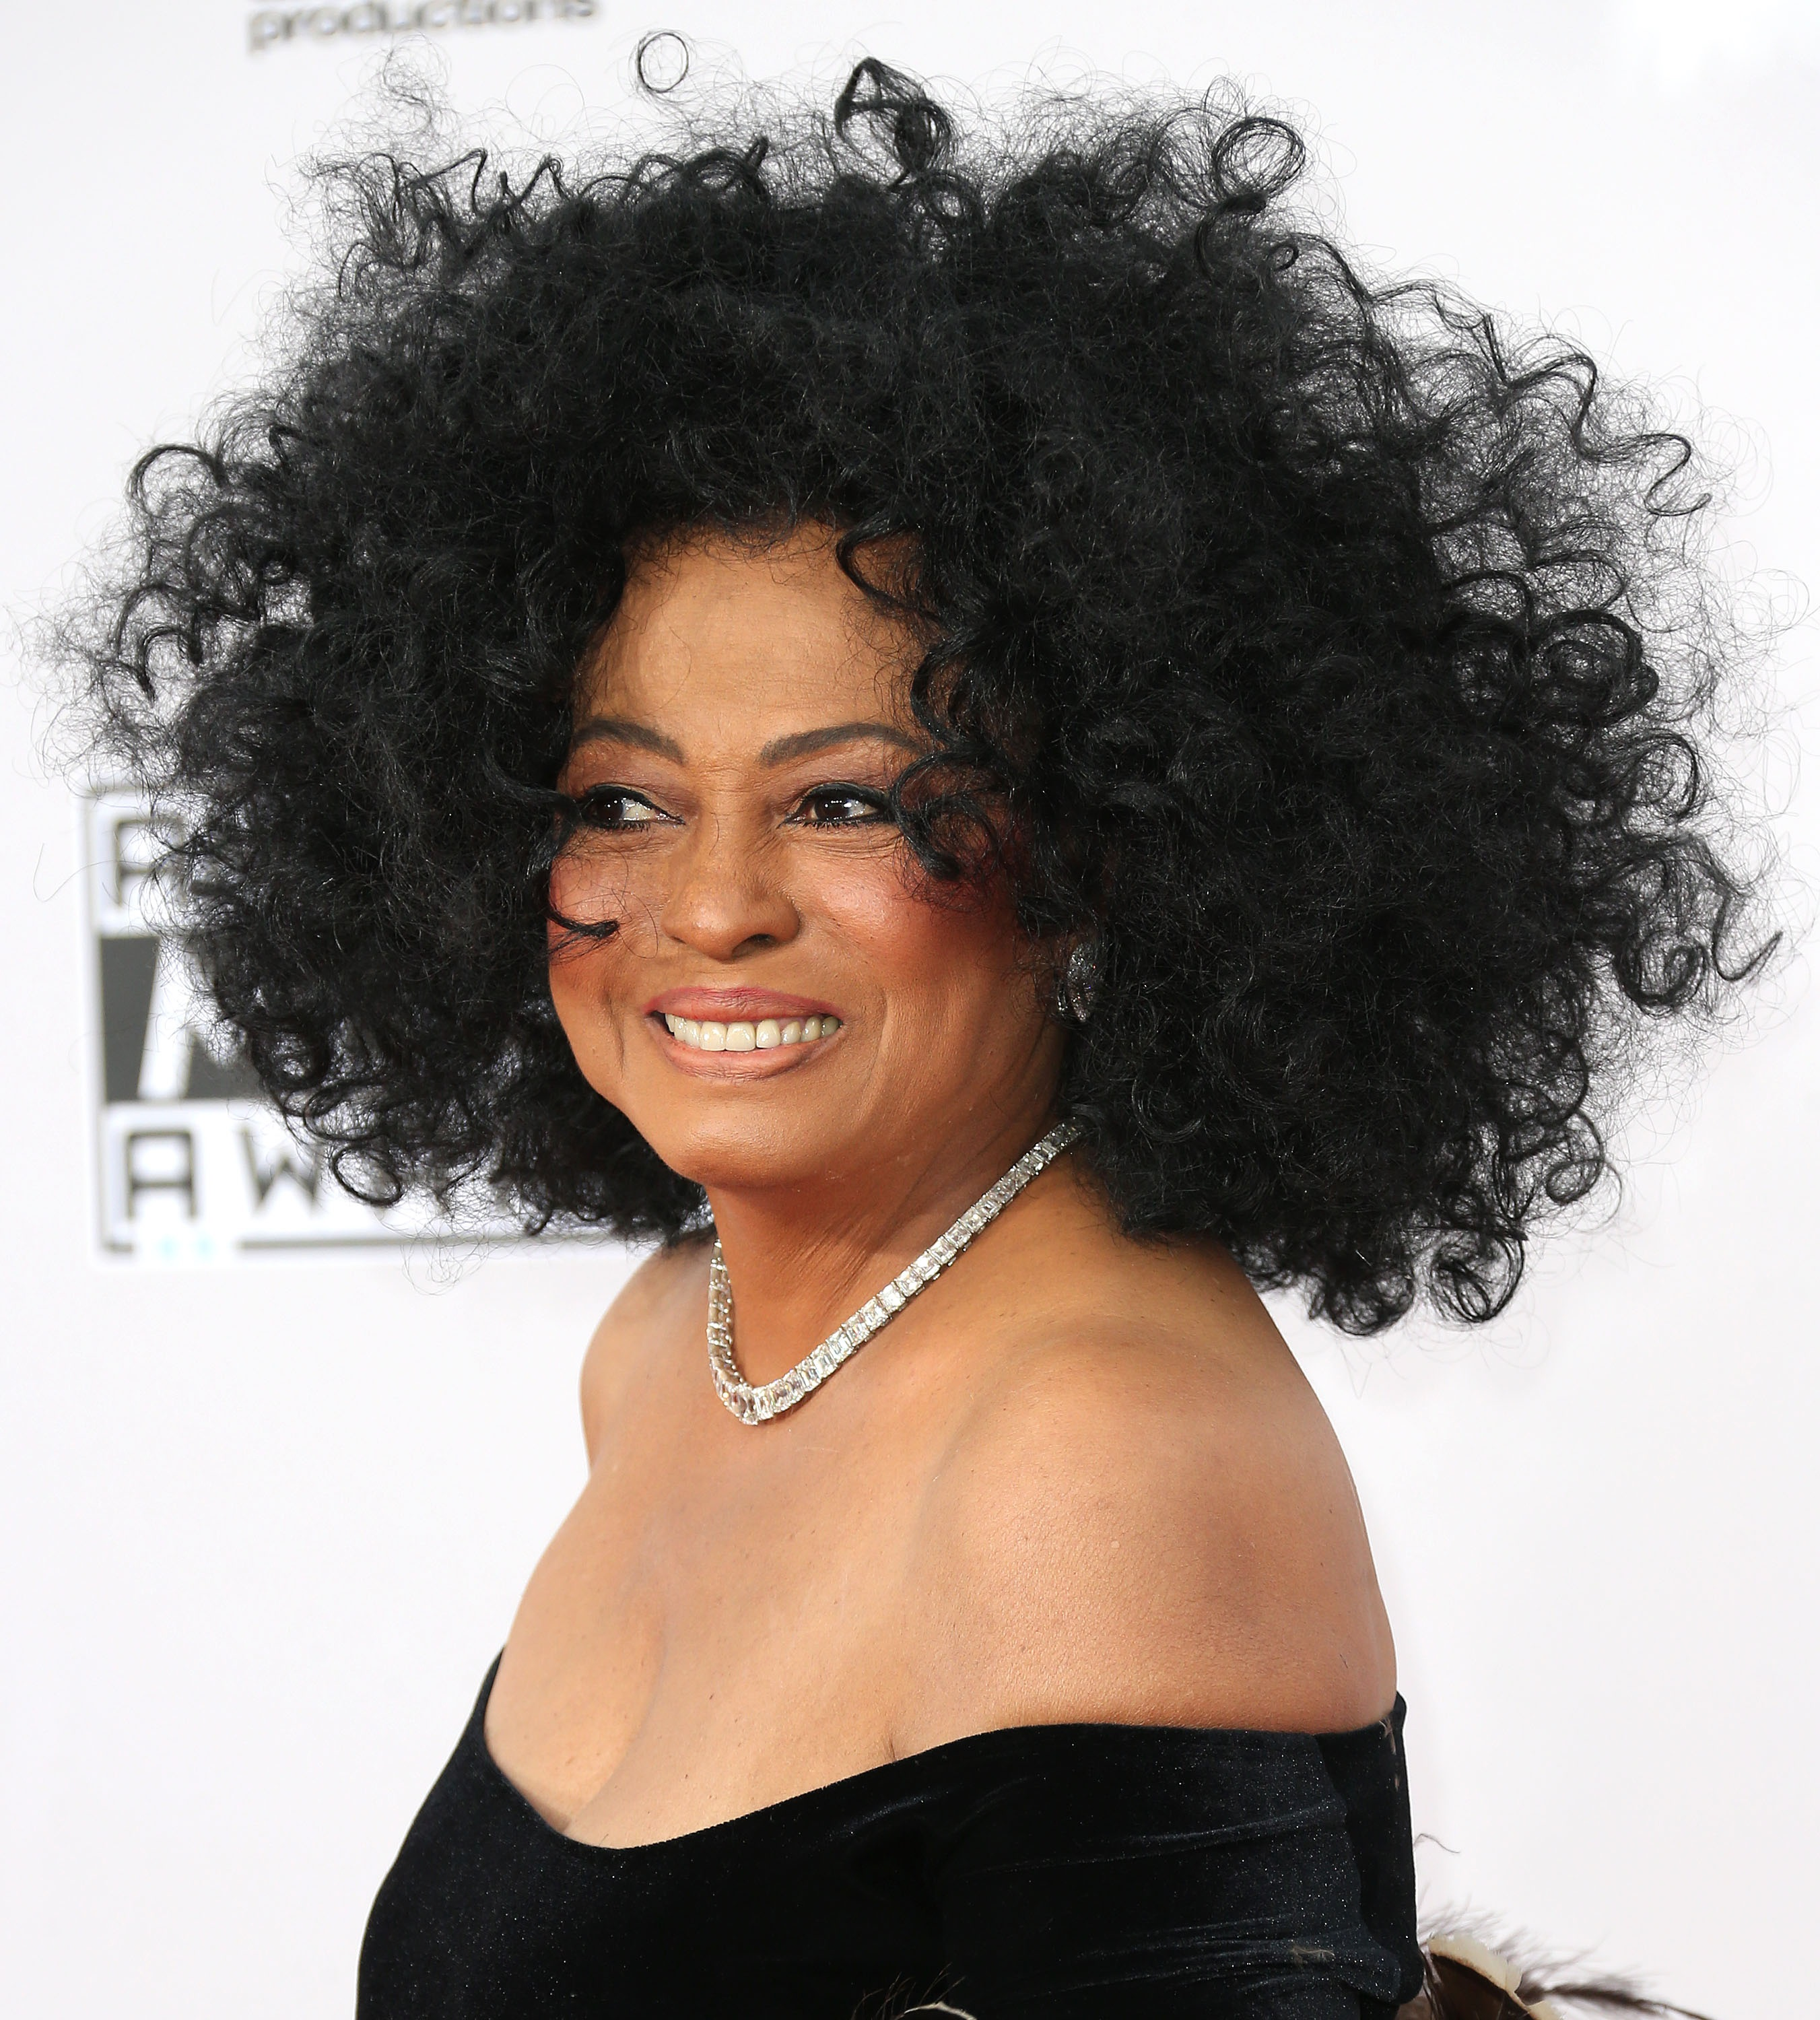 Diana Ross | All the action from the casino floor: news, views and more